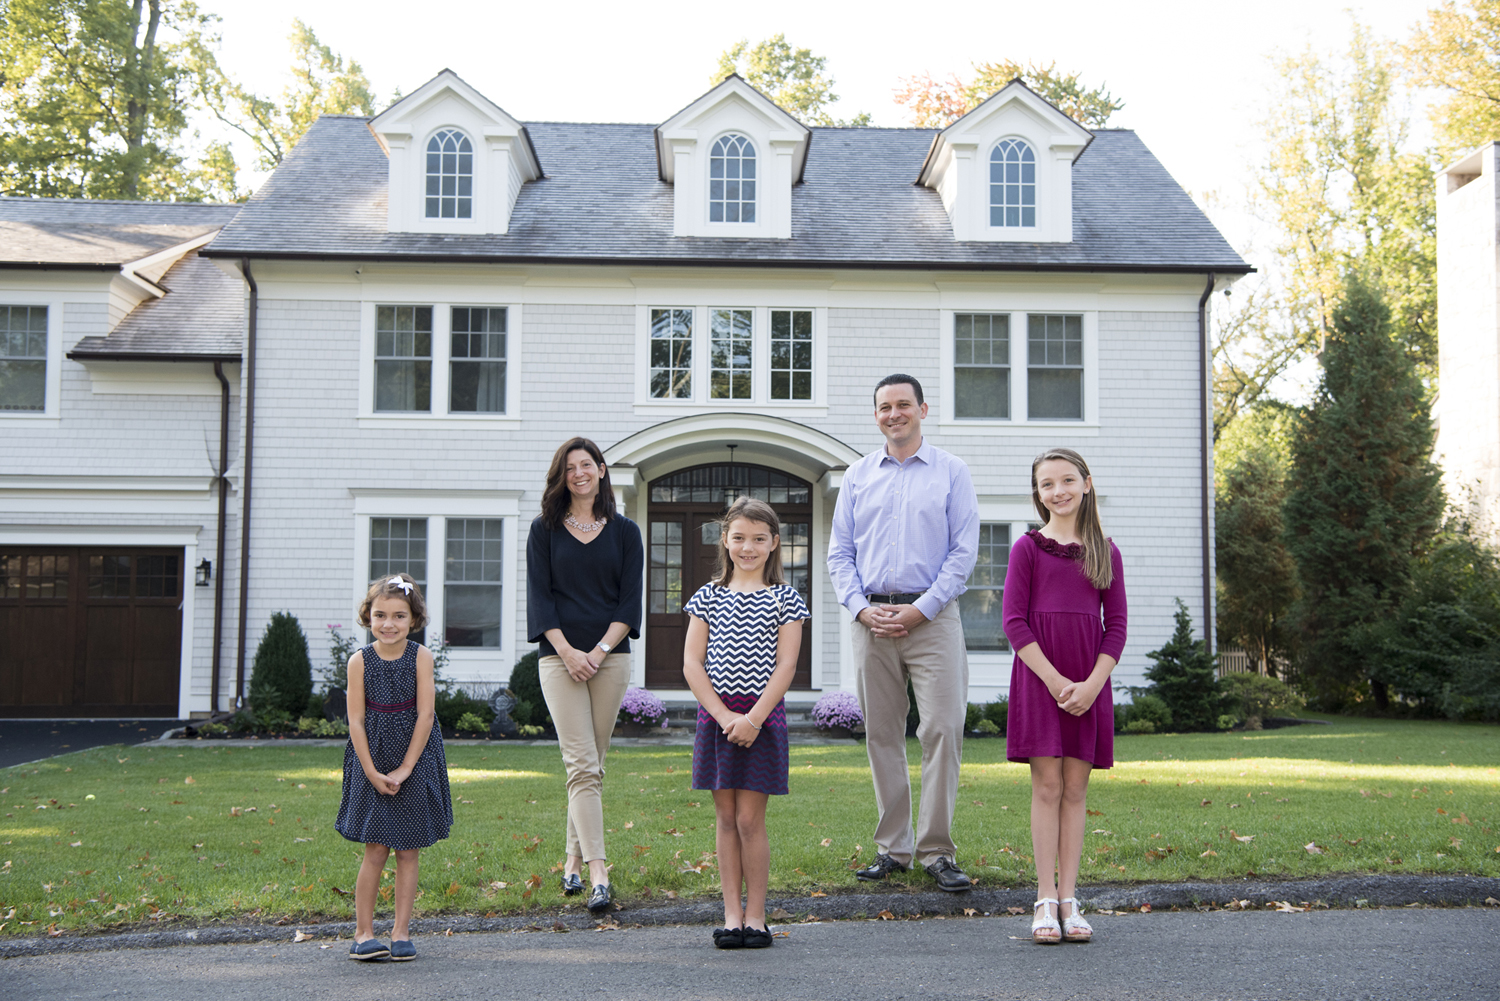 family portrait in front of home in Greenwich, CT